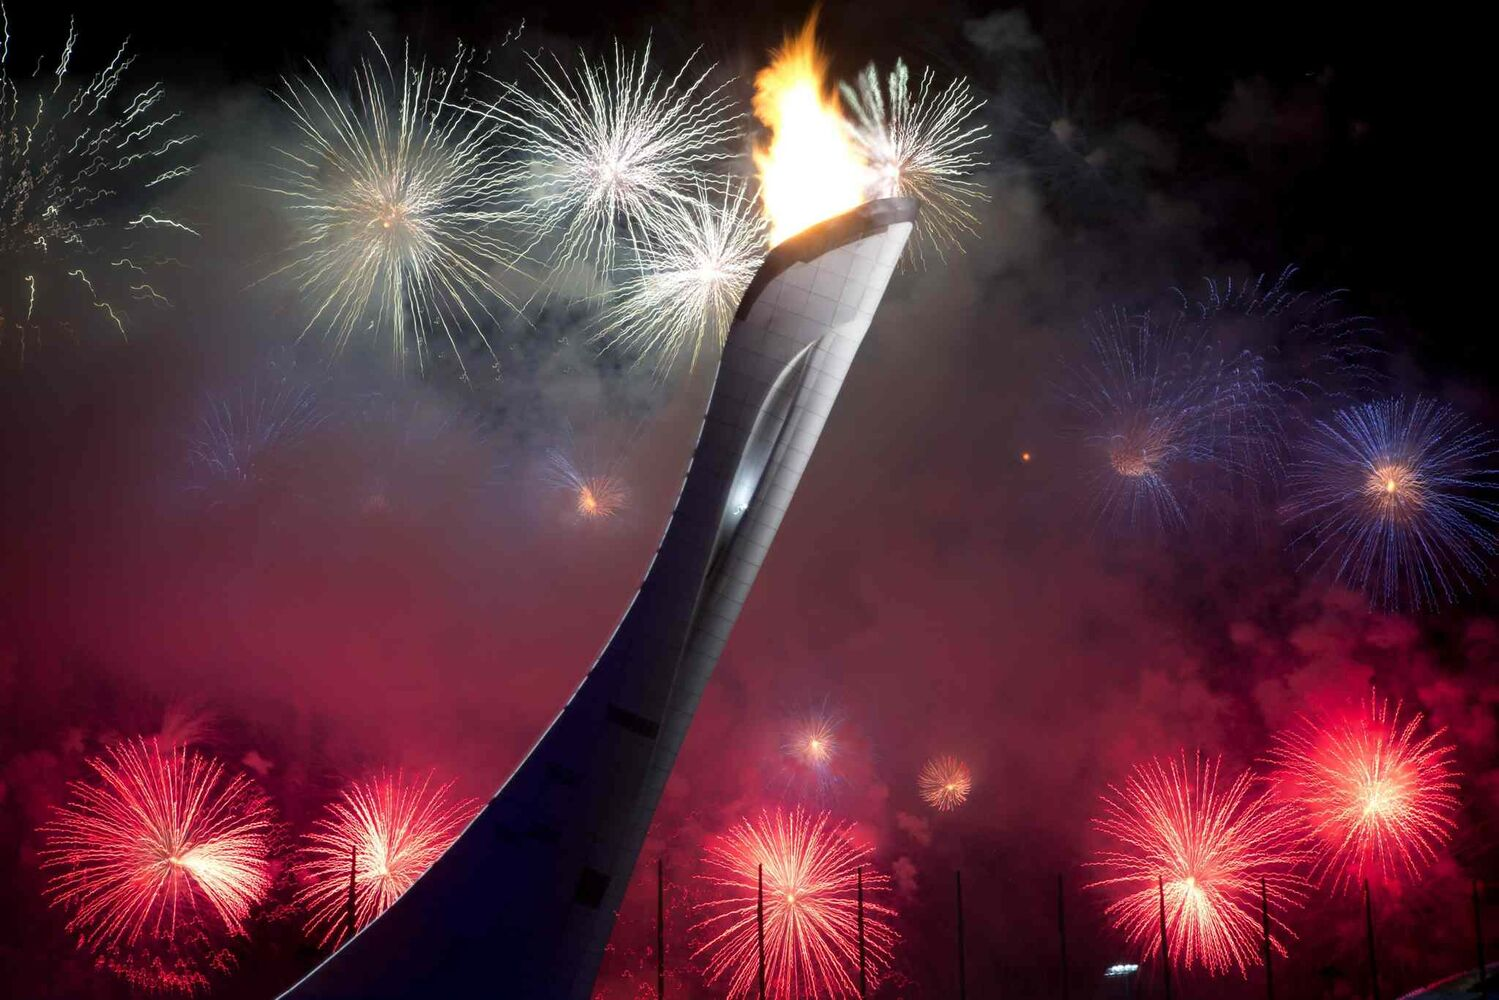 Fireworks explode behind the Olympic torch after it was lit at end of the opening ceremony for the 2014 Winter Olympics in Sochi, Russia, Friday, Feb. 7, 2014. (AP Photo/Bernat Armangue)